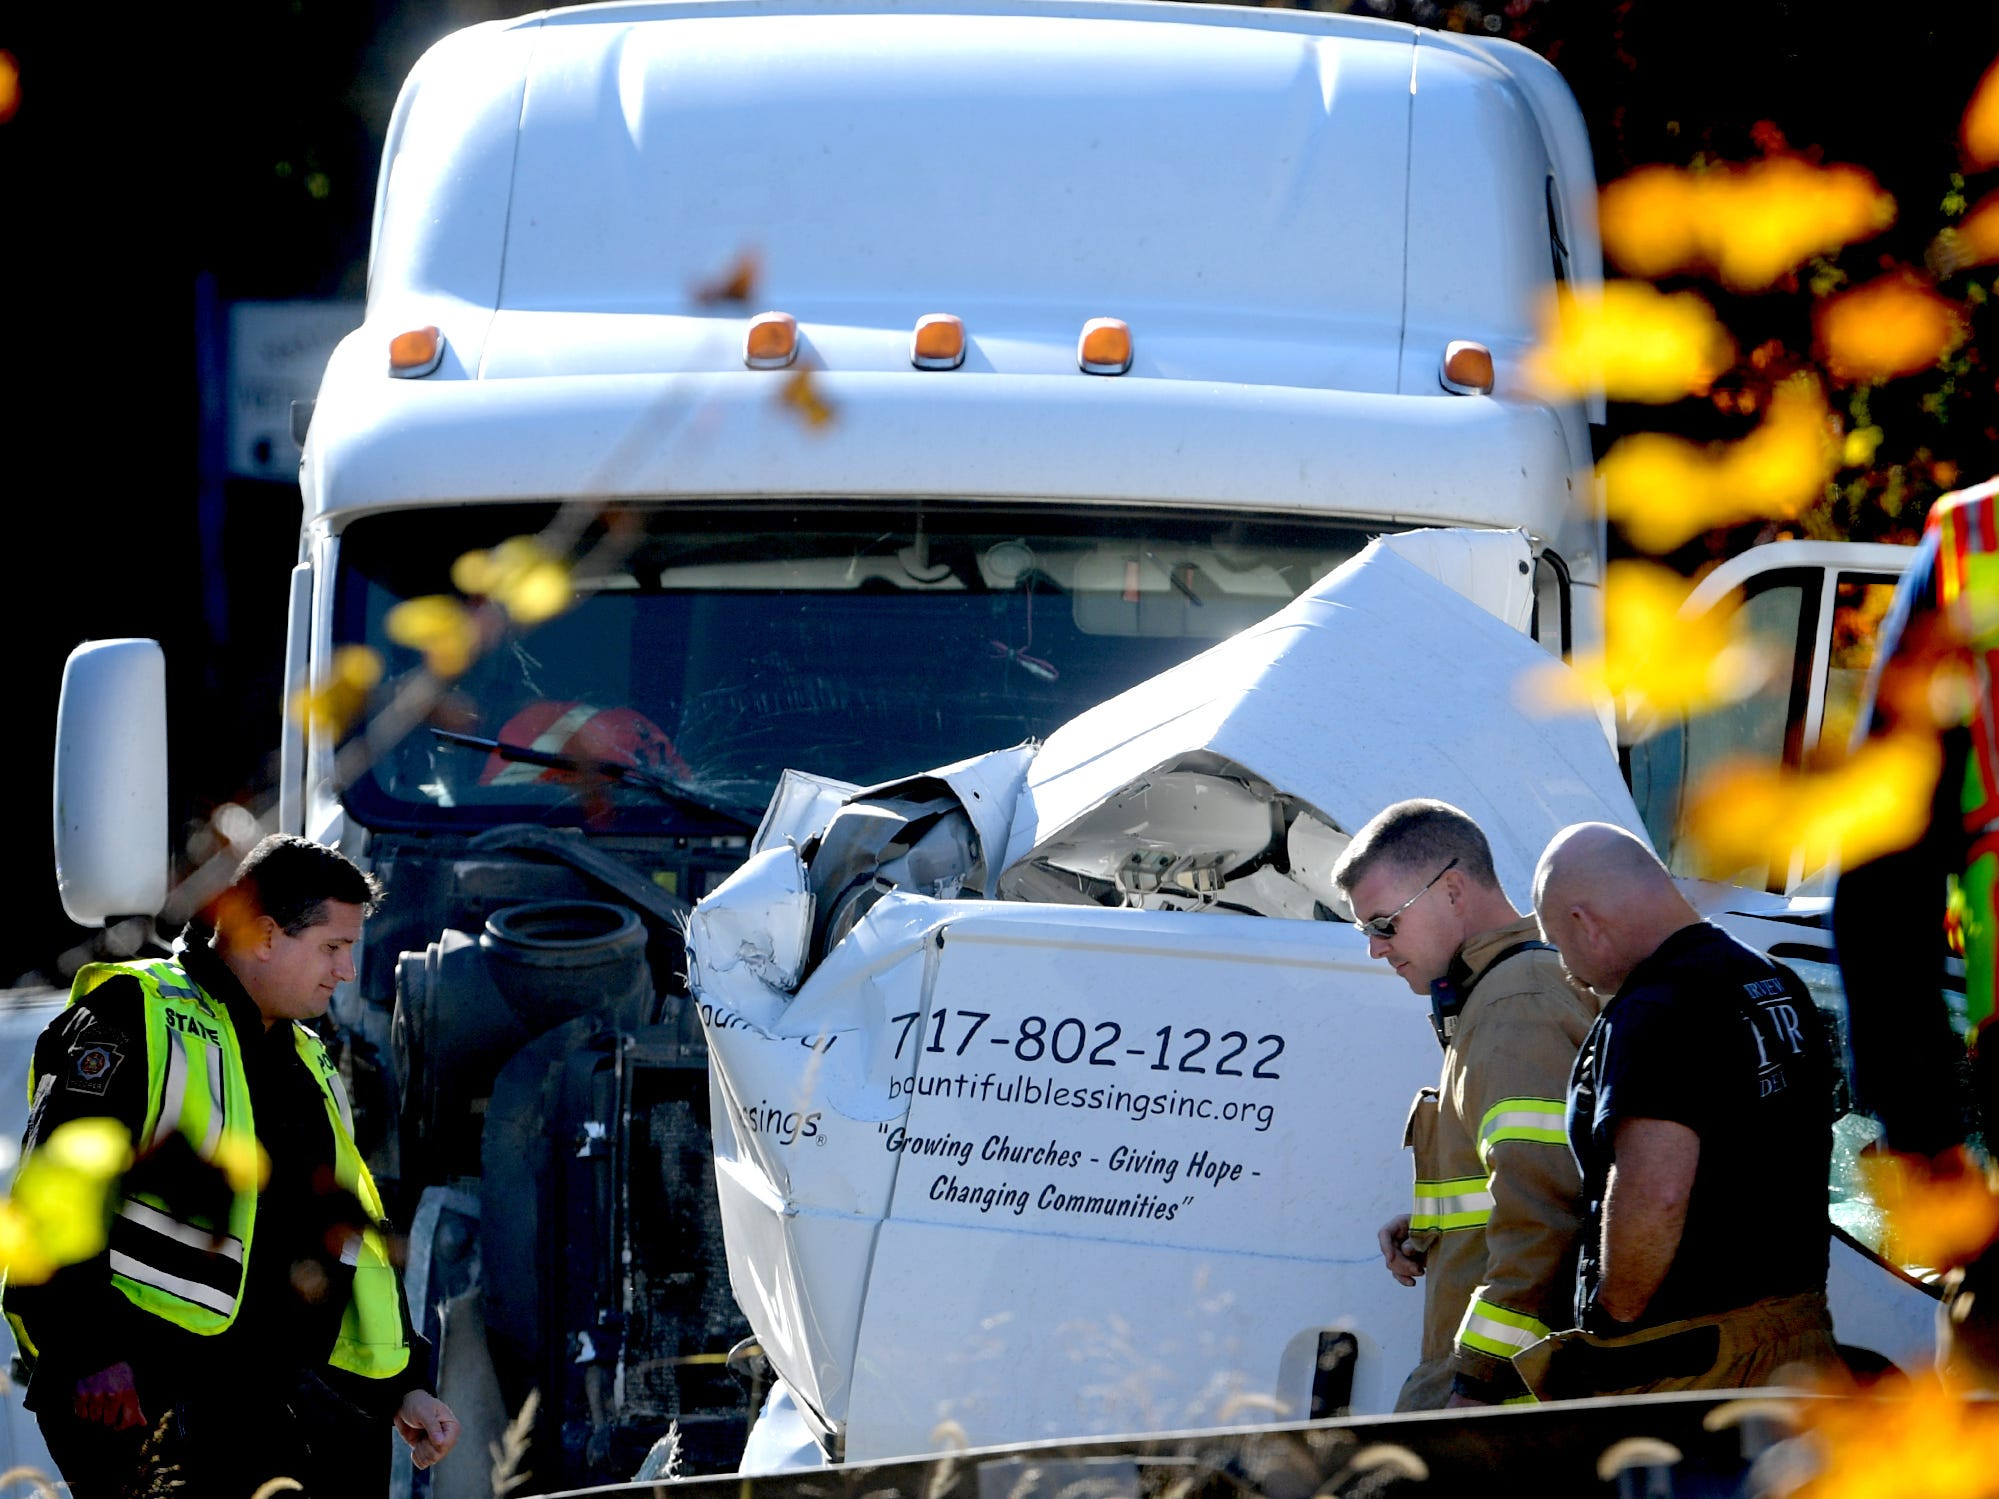 Emergency personnel confer at the scene of a fatal accident on northbound I-83 south of the Exit 34, Valley Green, Thursday, Nov. 8, 2018. Northbound lanes of the interstate were closed for several hours after the crash which occurred just before 9 a.m. Bill Kalina photo